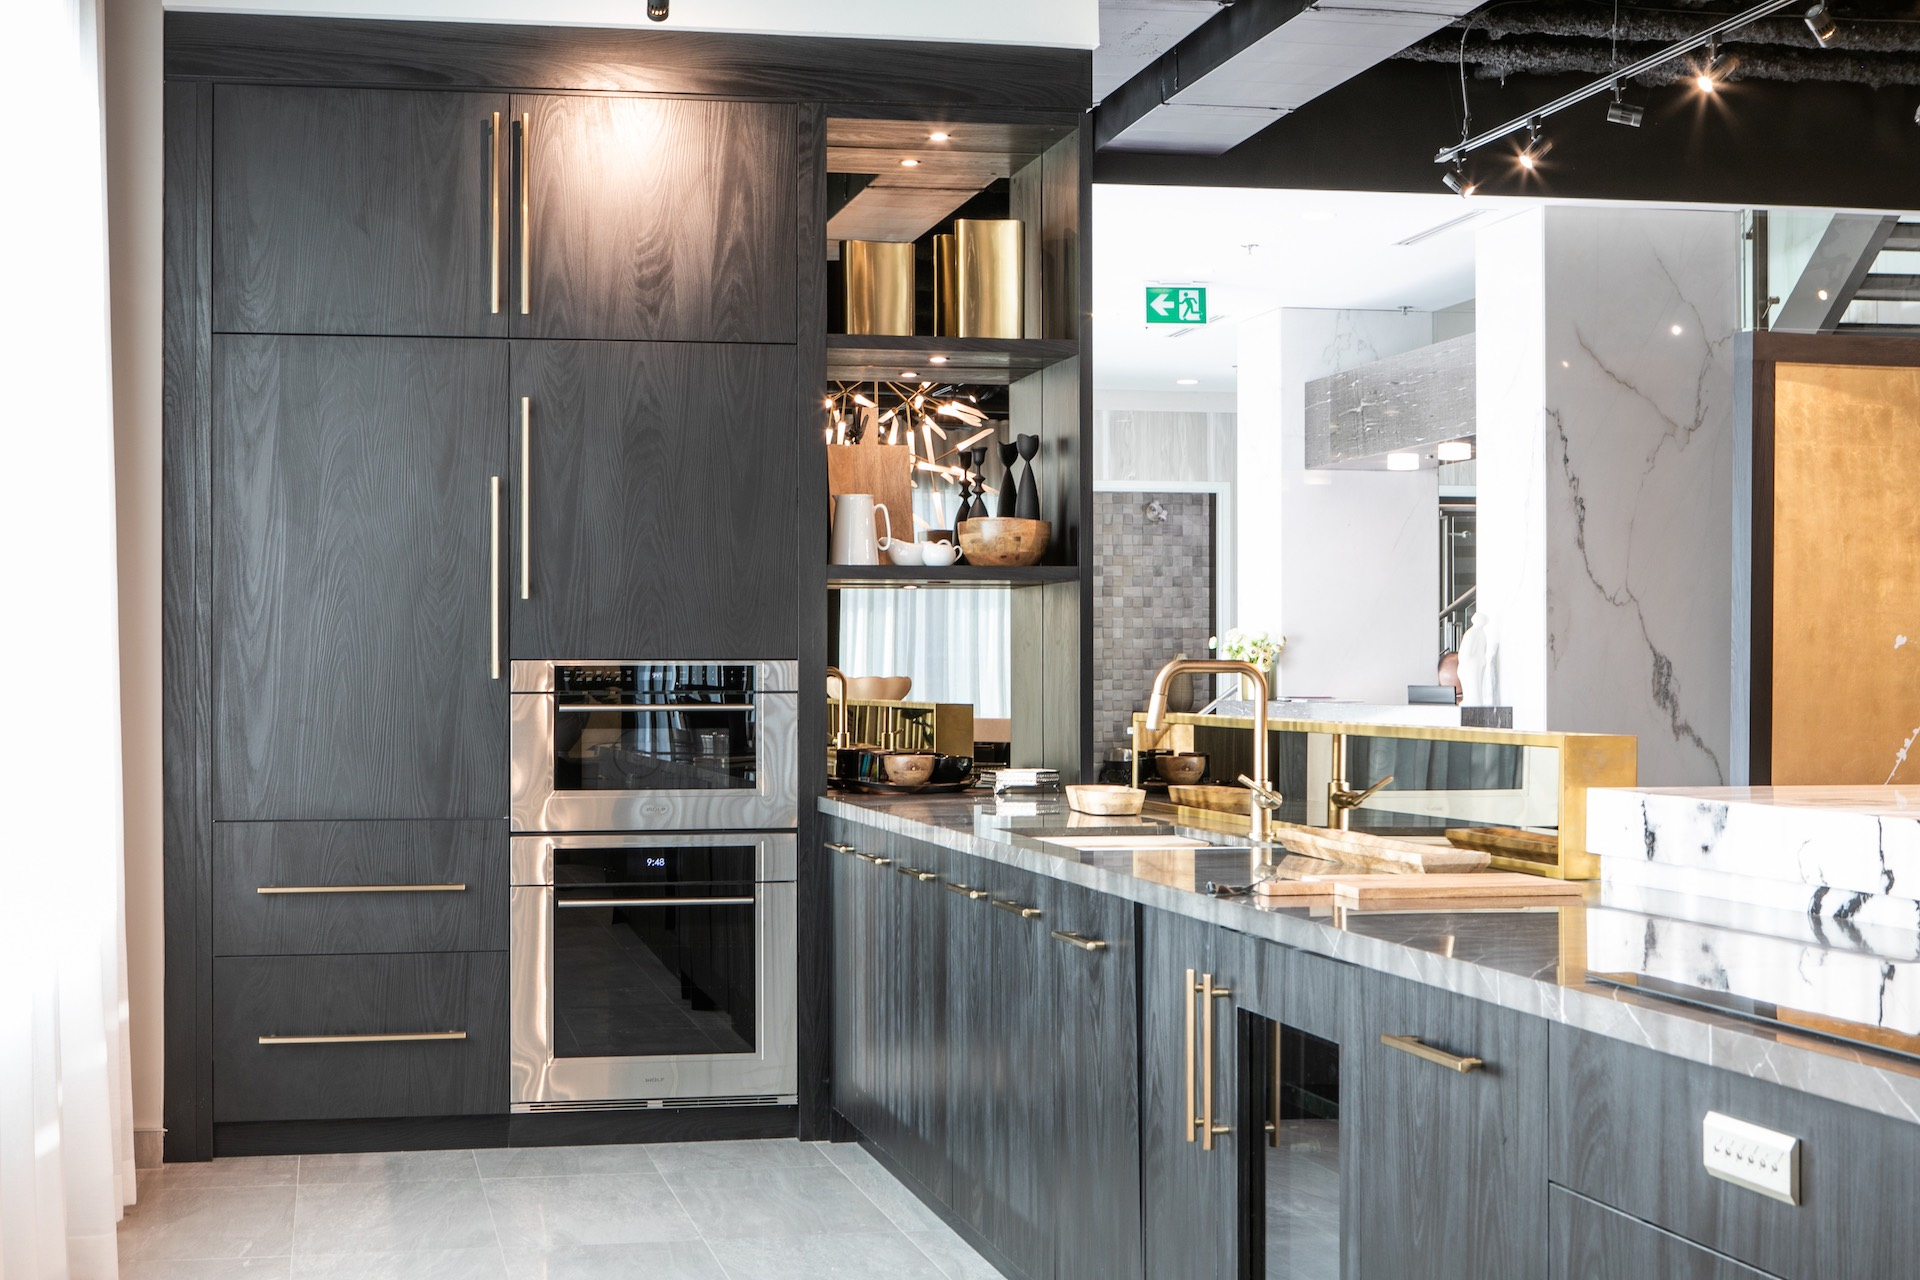 Grey kitchen with sink and oven